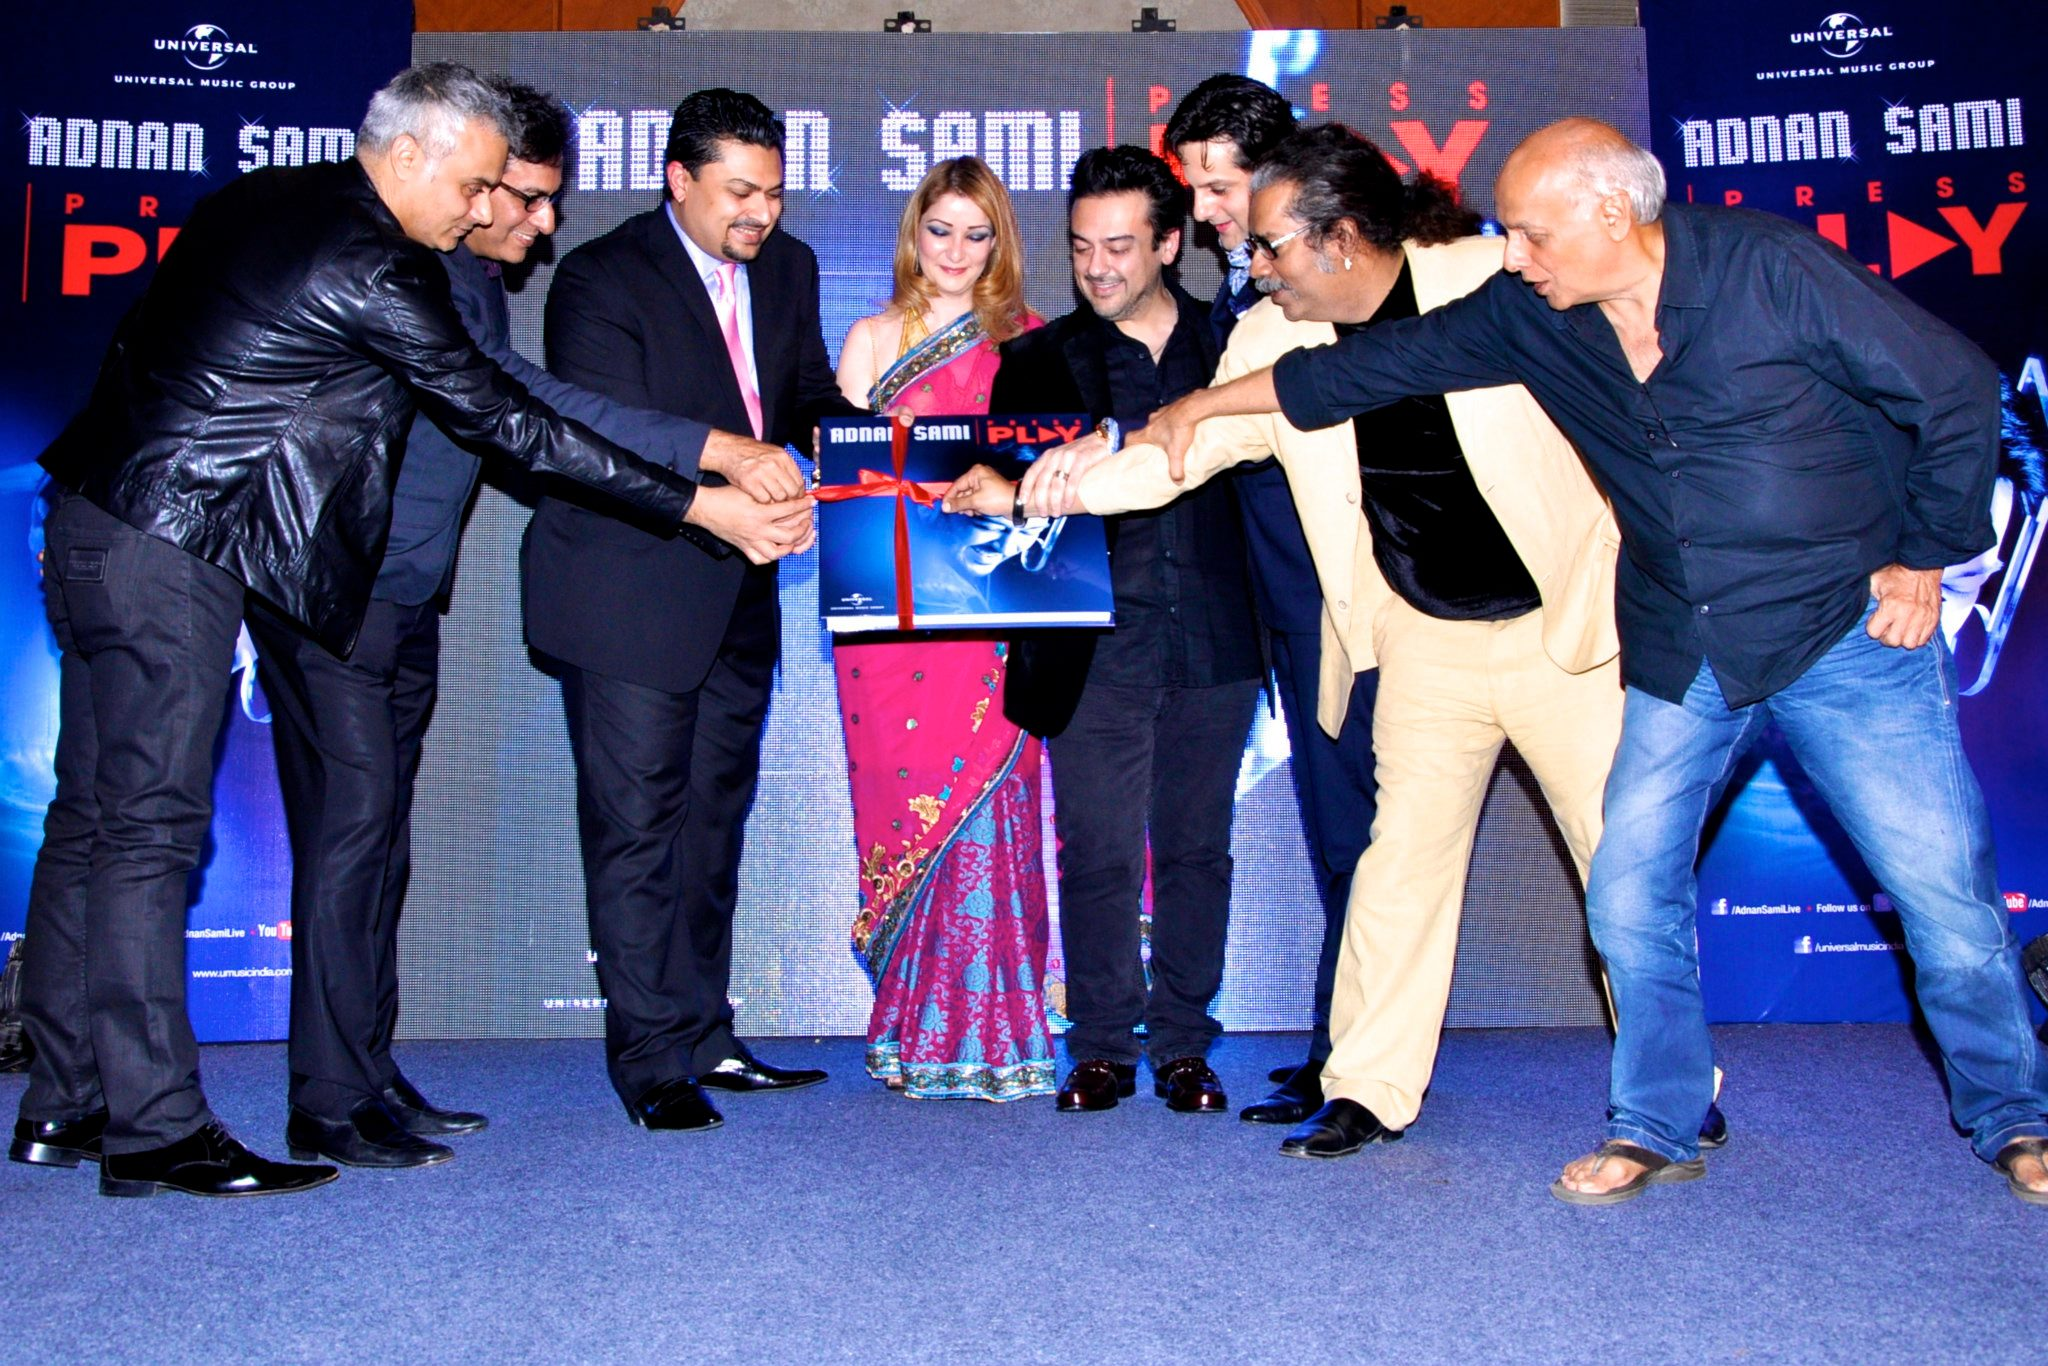 Adnan Sami Press Play Album Launch - 10